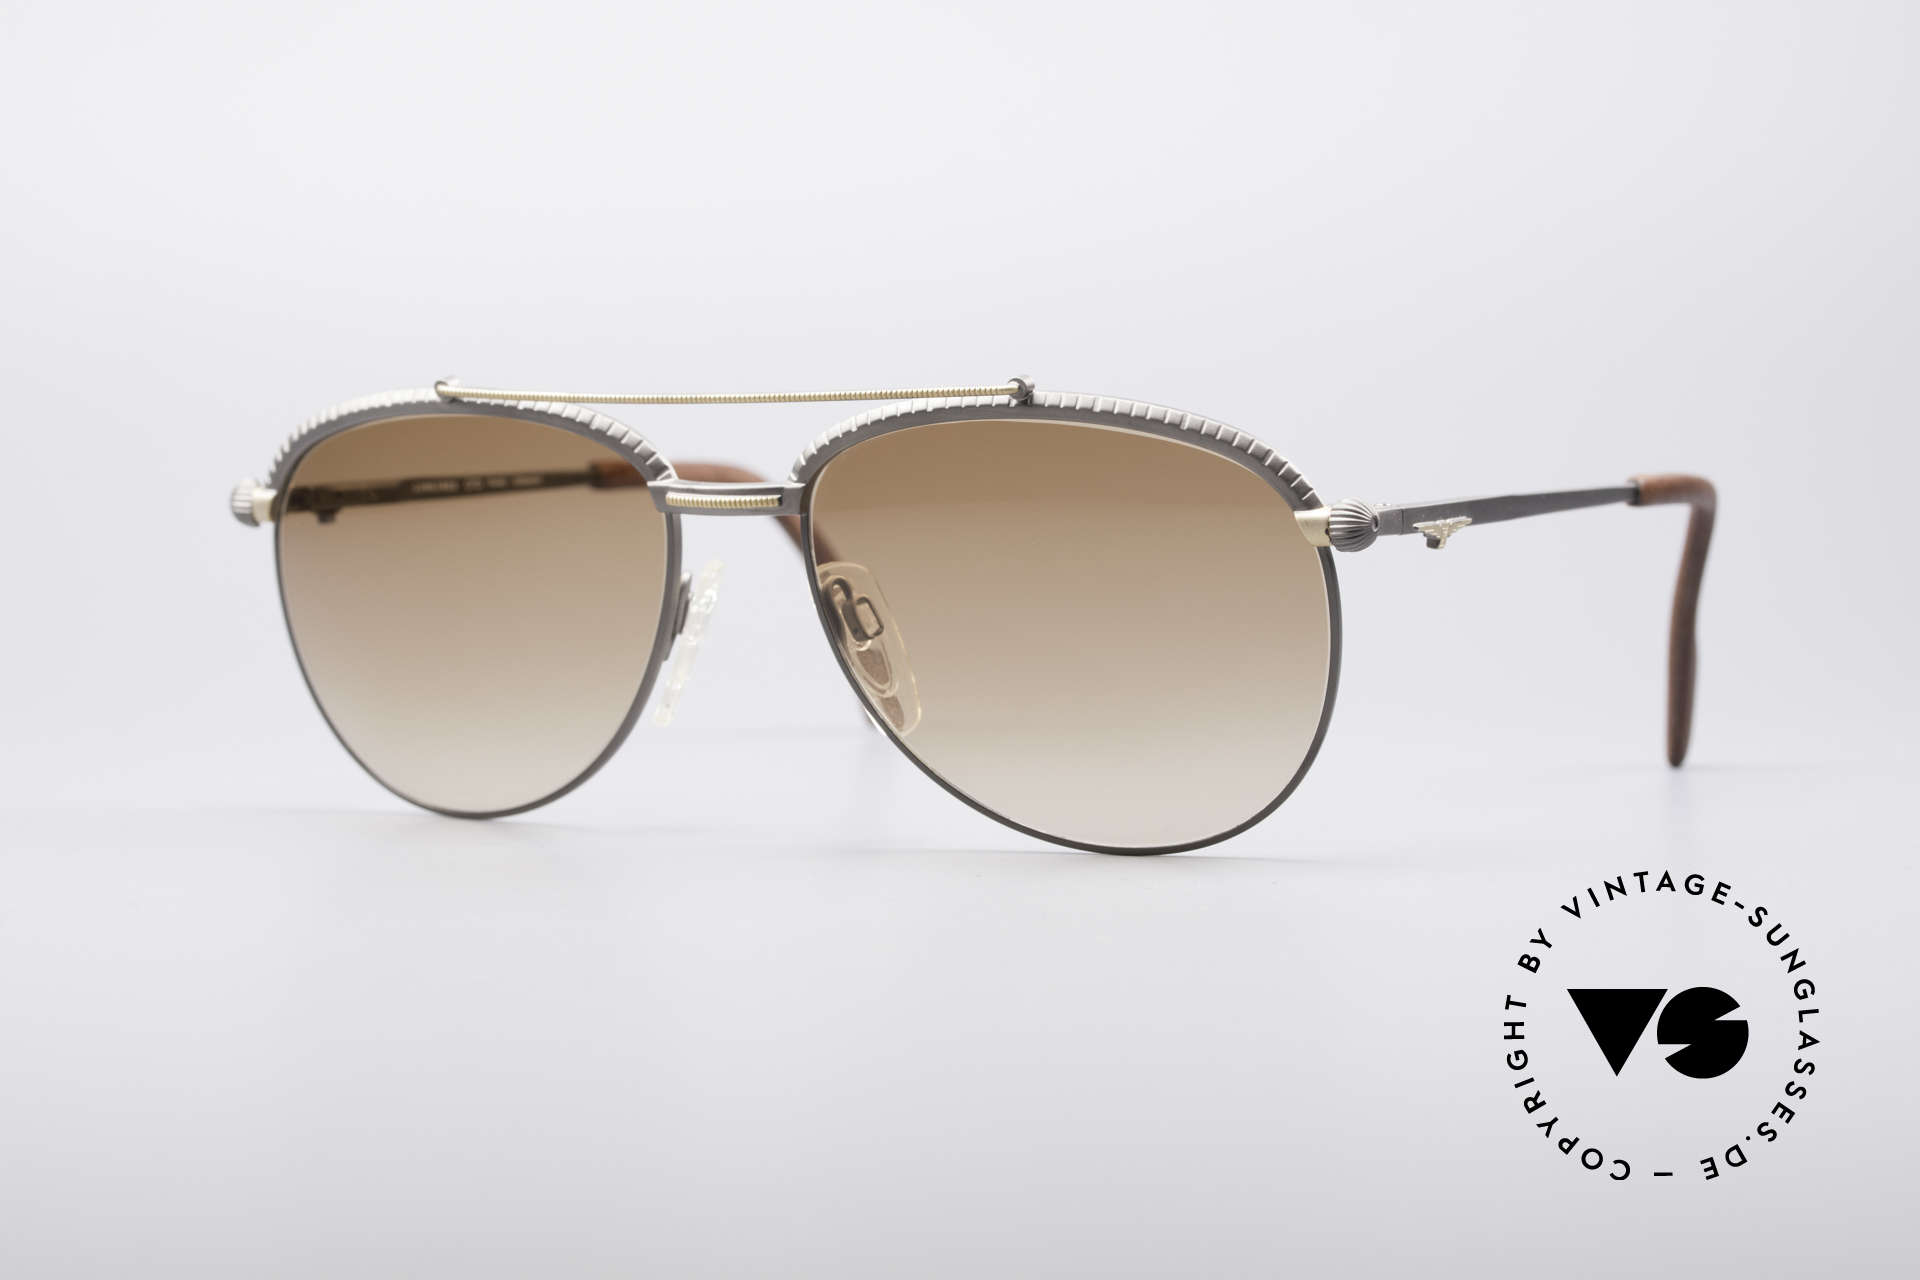 Longines 0161 80's Luxury Sunglasses, very noble vintage sunglasses by LONGINES from 1985, Made for Men